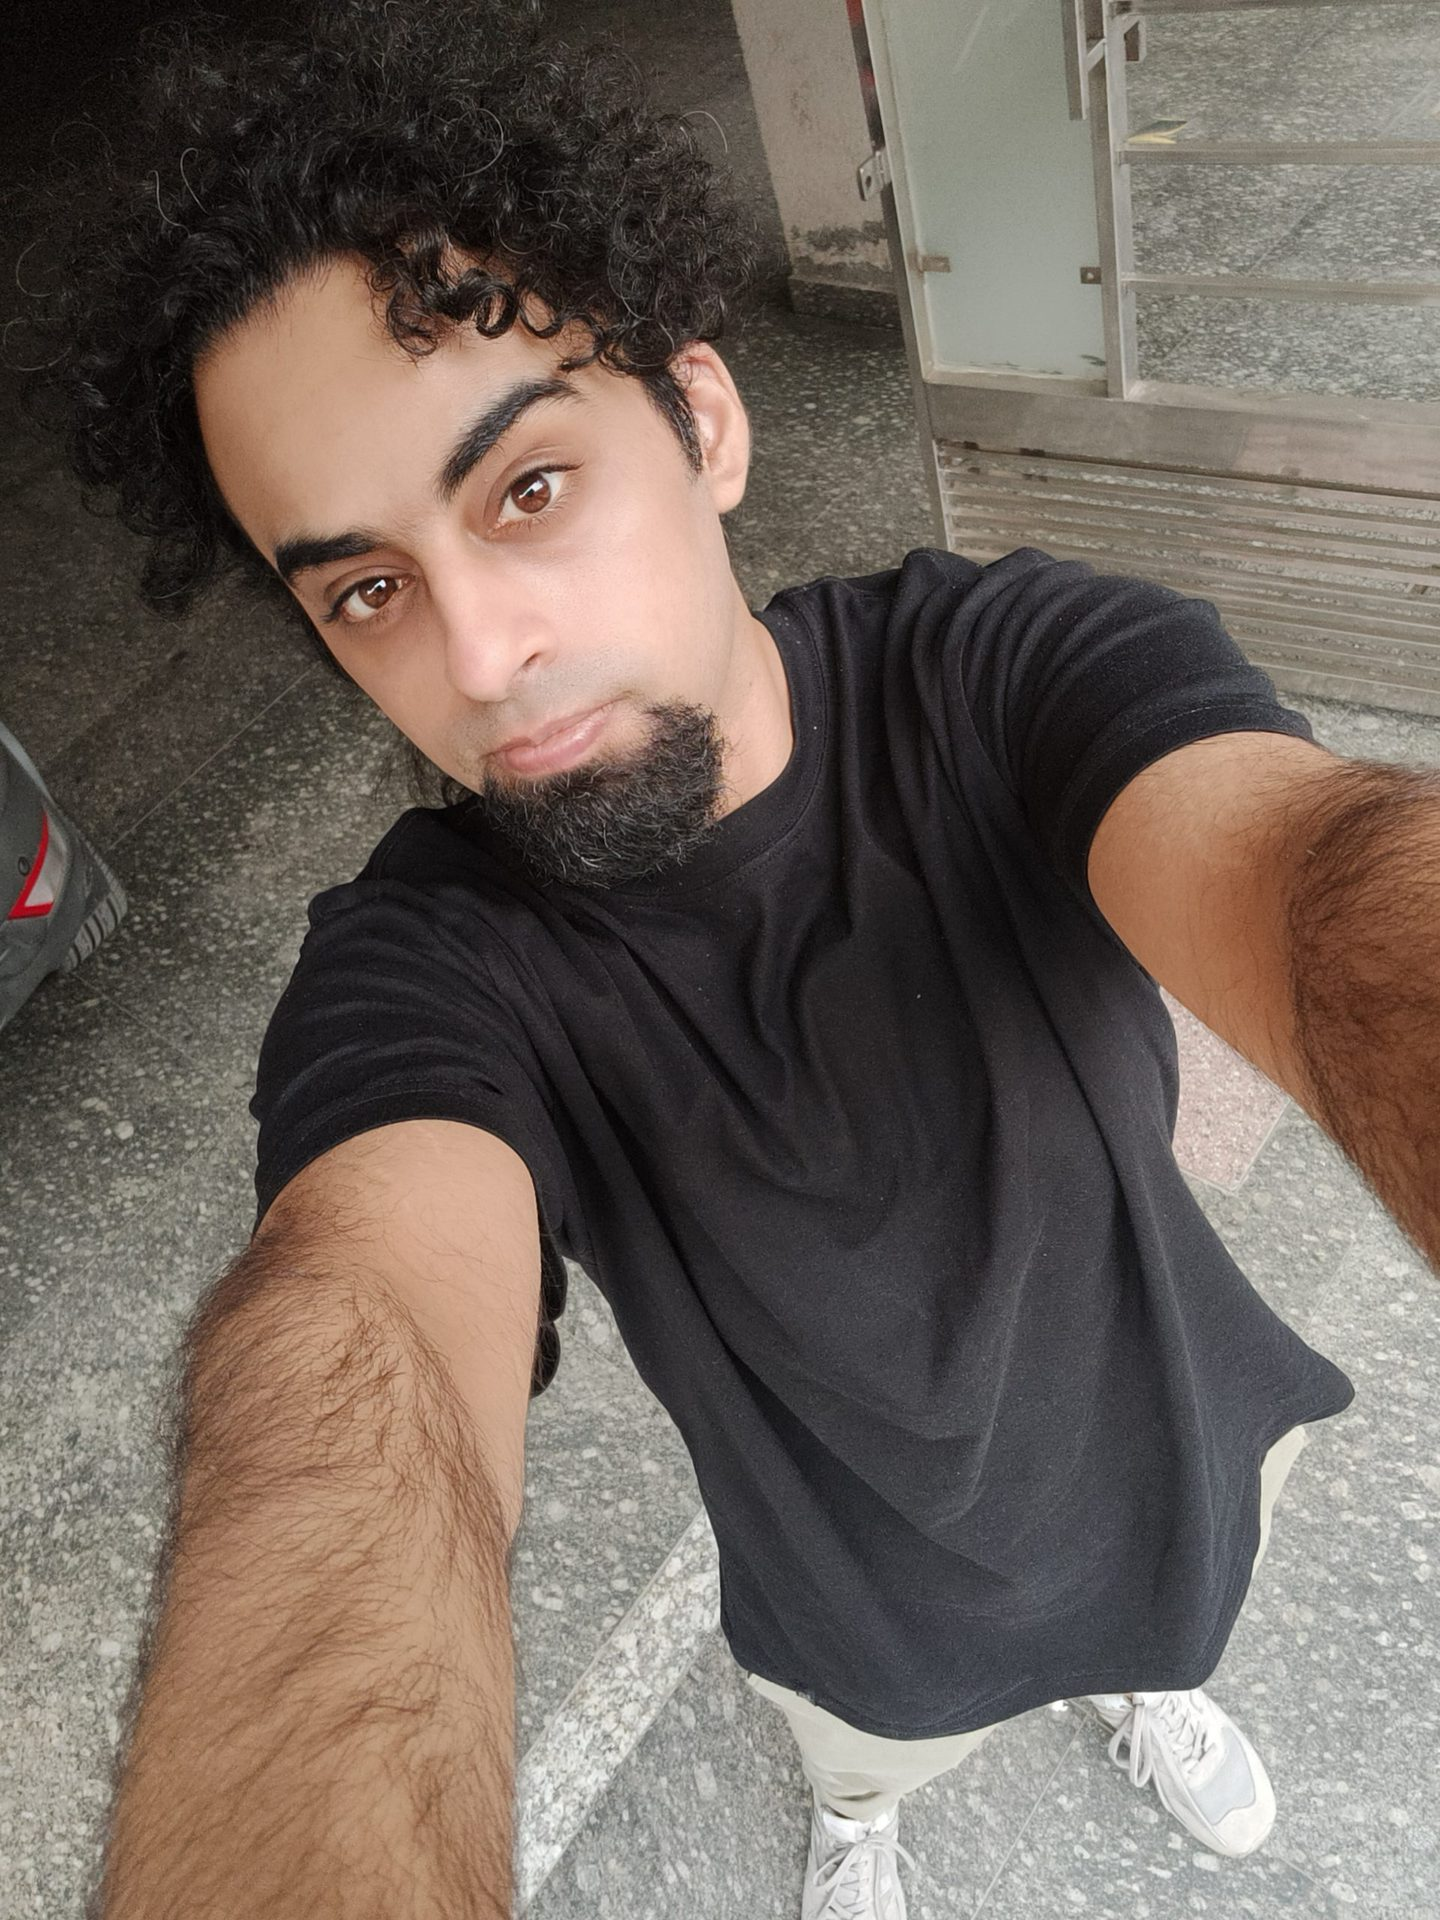 Realme GT selfie sample shot of a man with dark curly hair and a beard, wearing a black t-shirt.